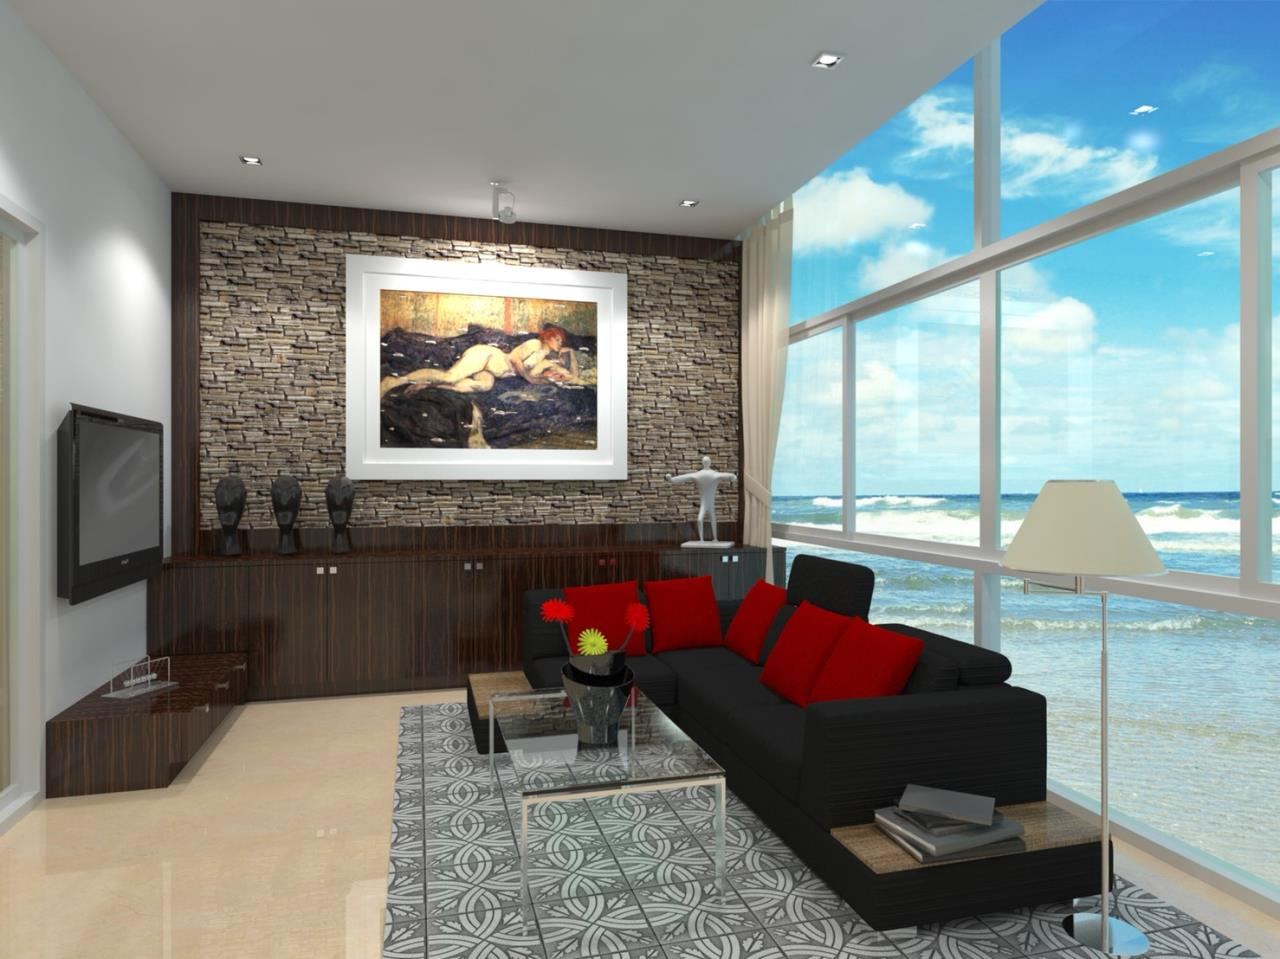 Signature Realty ( Thailand ) Co Ltd Agency's Furnished 1bedroom 46 sq.m condo with jacuzzi floor 21-31 at The Grand Jomtein Beach Pattaya 34